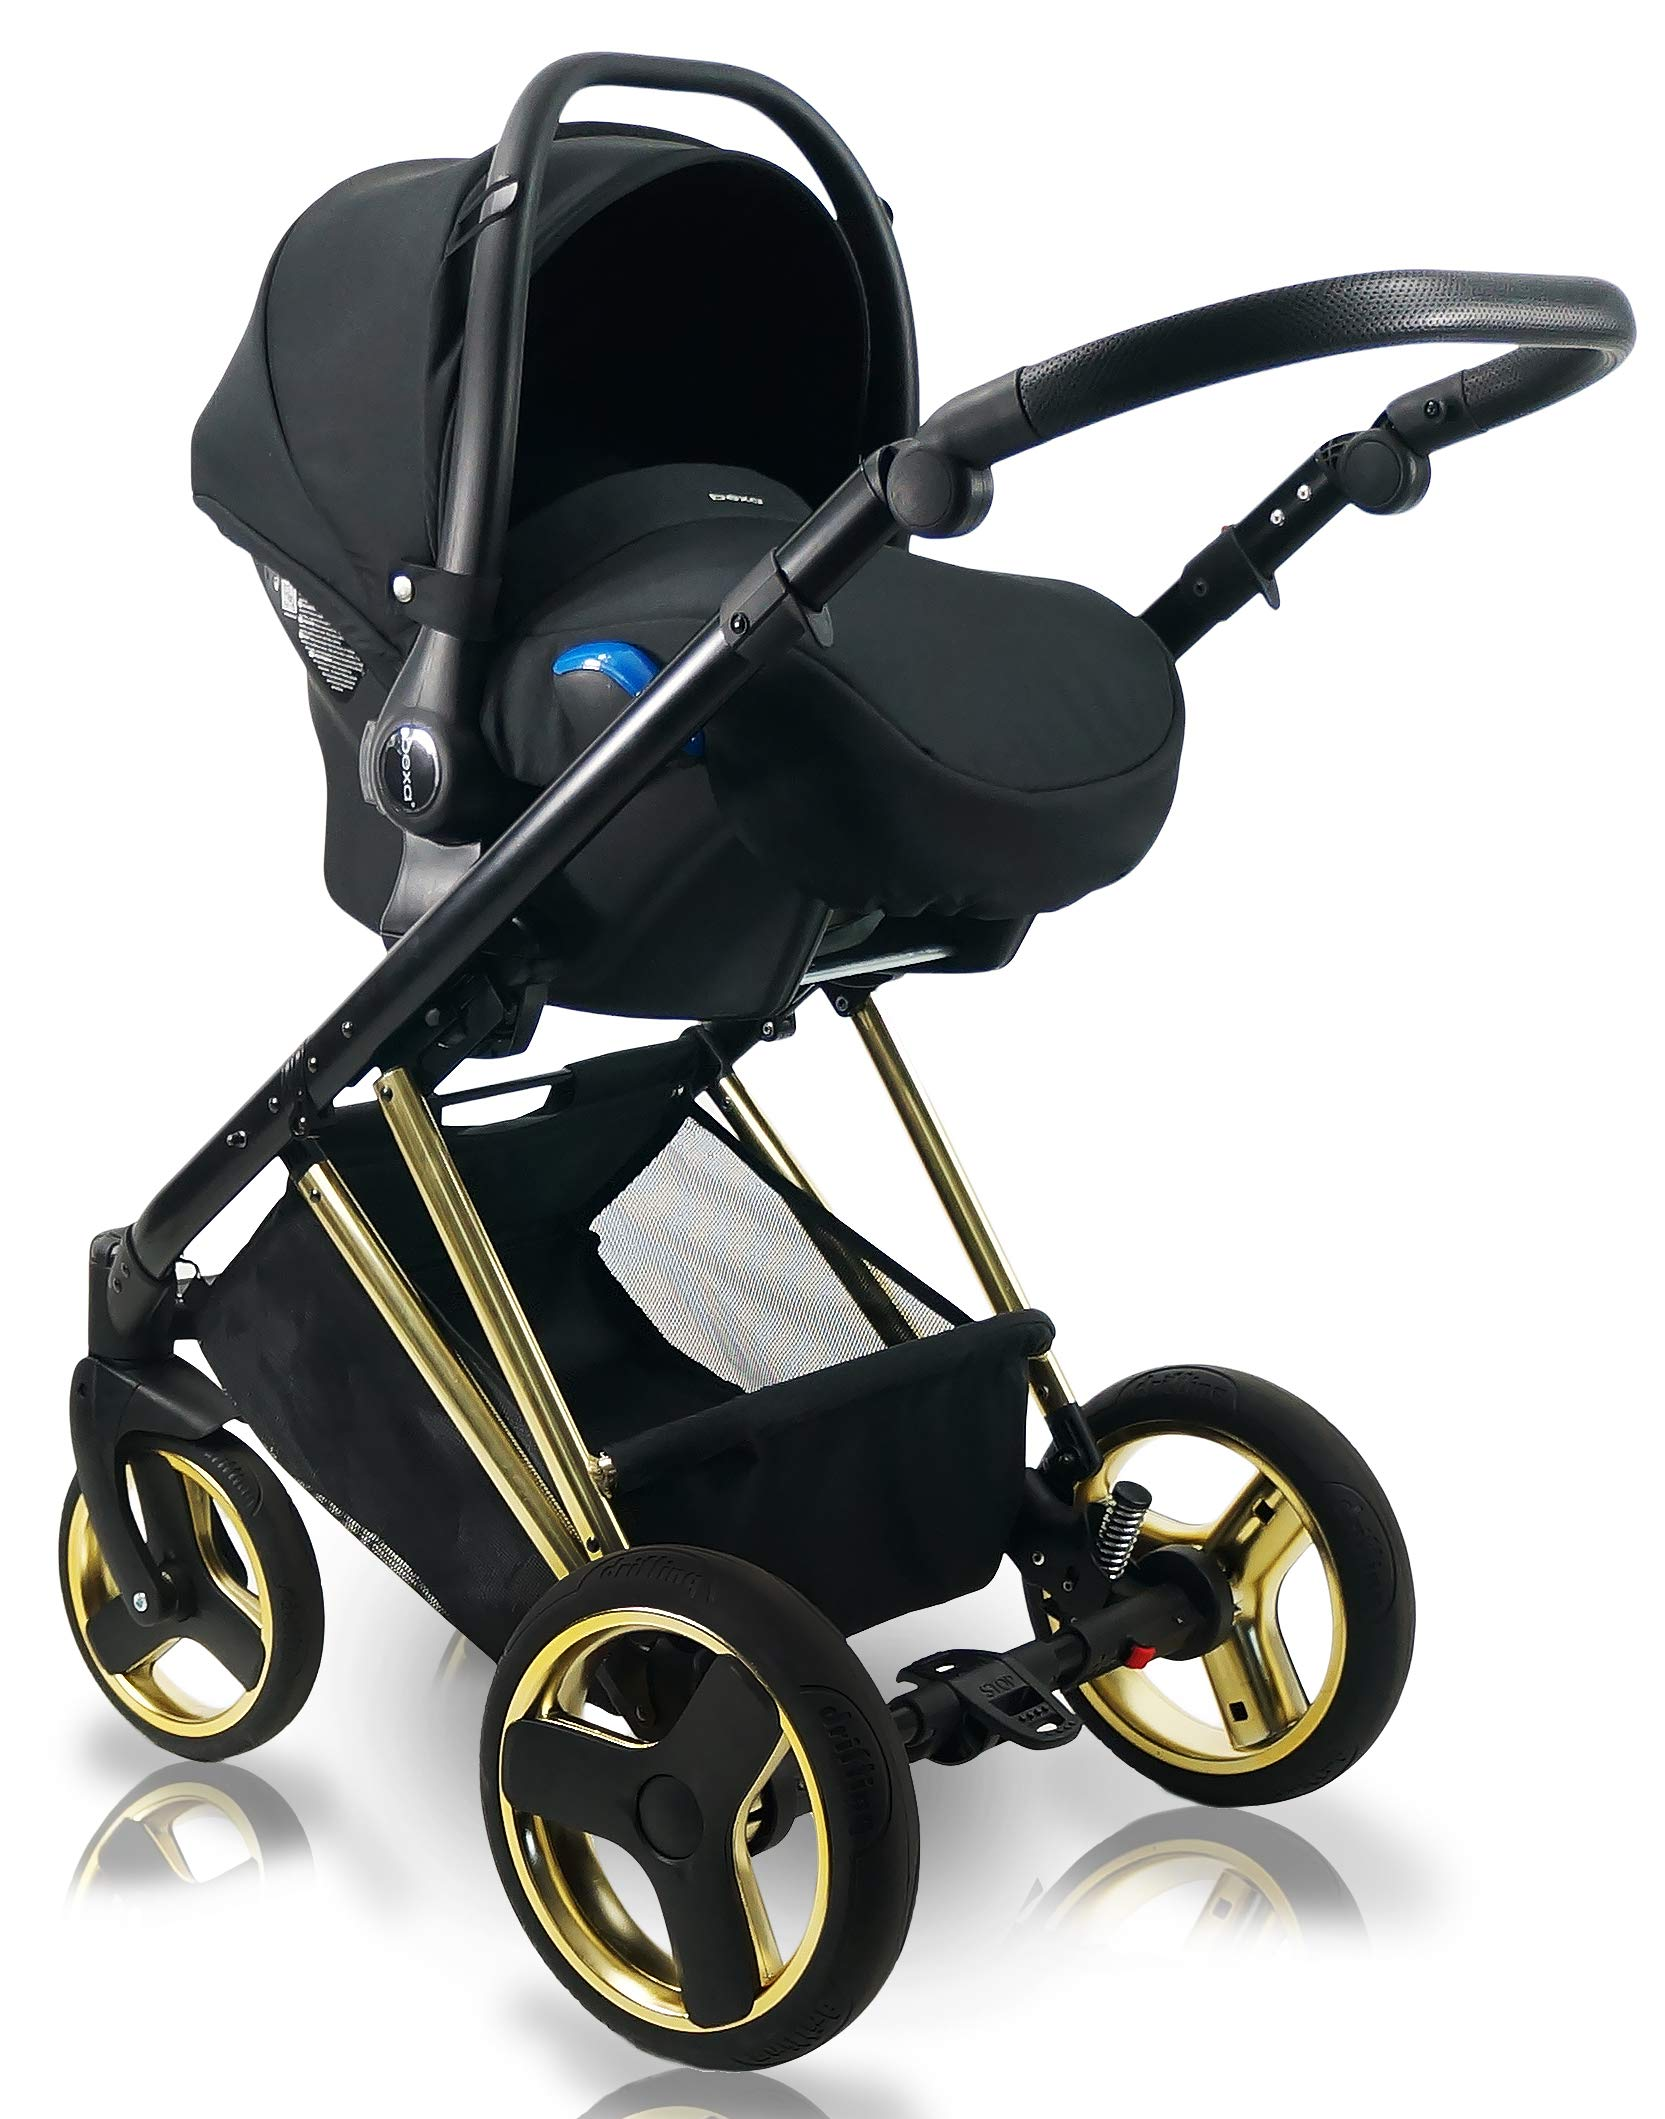 SaintBaby Stroller Buggy Baby seat Car seat Next II Gold Chrome Gold N1 4in1 with Isofix SaintBaby If you want the black frame instead of the gold frame, please inform us after the purchase. 3in1 or 2in1 Selectable. At 3in1 you will also receive the car seat (baby seat). Of course you get the baby tub (classic pram) as well as the buggy attachment (sports seat) no matter if 2in1 or 3in1. The car naturally complies with the EU safety standard EN1888. During production and before shipment, each wagon is carefully inspected so that you can be sure you have one of the best wagons. Saintbaby stands for all-in-one carefree packages, so you will also receive a diaper bag in the same colour as the car as well as rain and insect protection free of charge. With all the colours of this pram you will find the pram of your dreams. 7